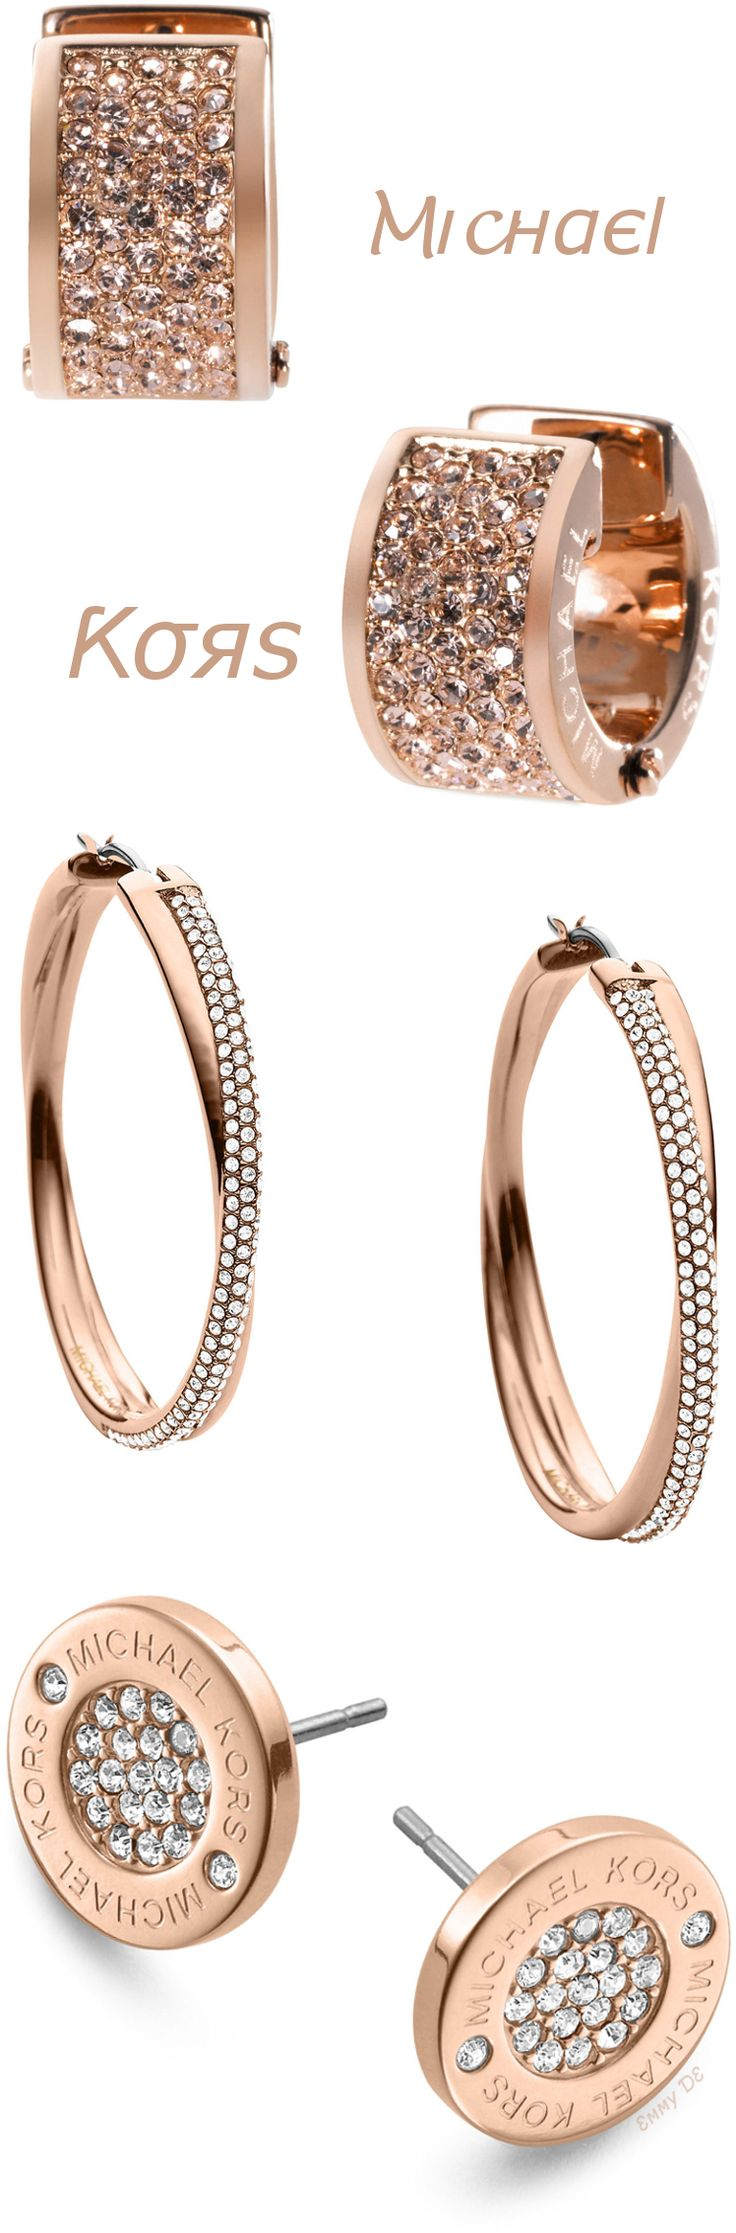 Brilliant Luxury ♦ Michael Kors Earrings